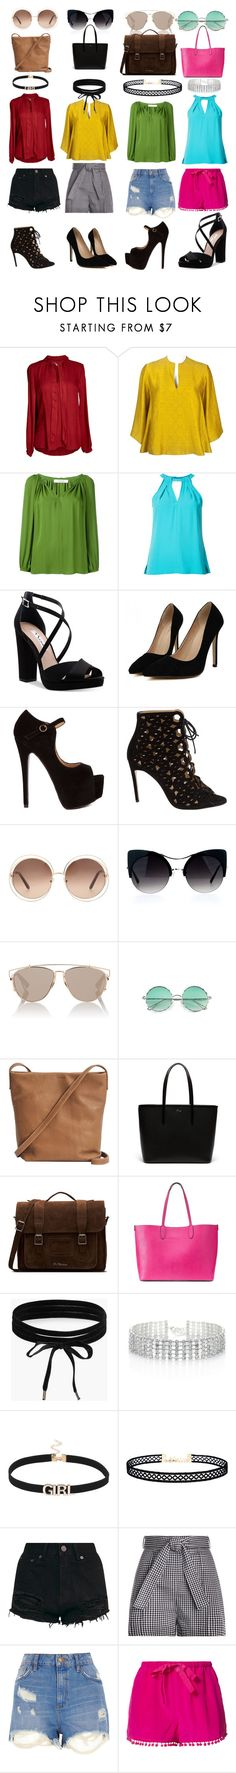 """""""#outfits"""" by fandomfreak1204 ❤ liked on Polyvore featuring Velvet by Graham & Spencer, Alexander McQueen, Dorothee Schumacher, Trina Turk, Nina, Bionda Castana, Chloé, Christian Dior, BAGGU and Lacoste"""